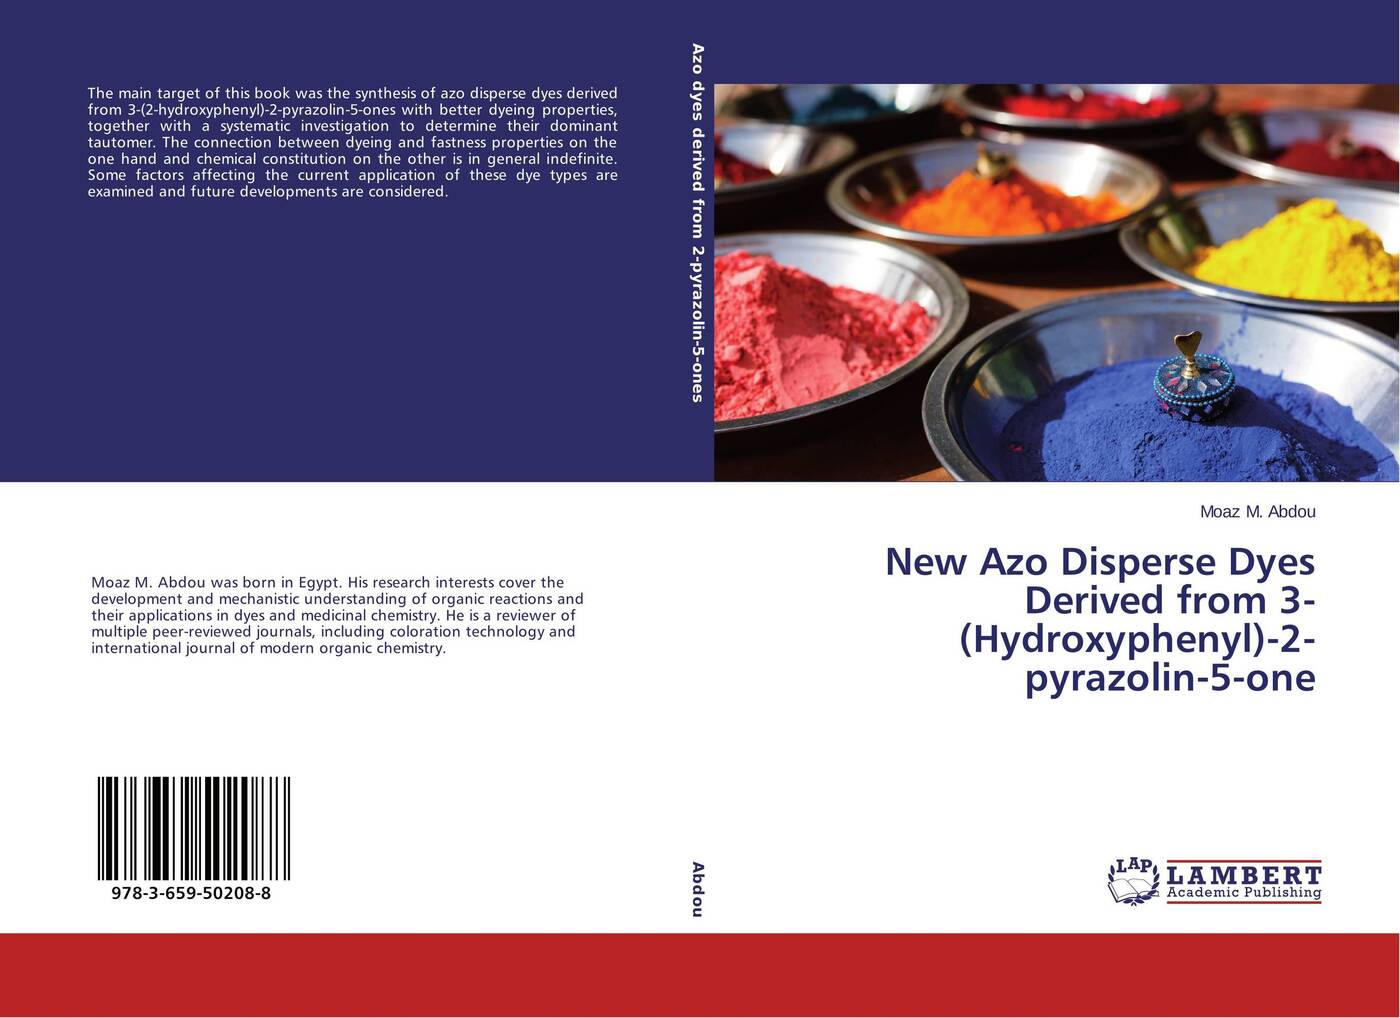 Moaz M. Abdou New Azo Disperse Dyes Derived from 3-(Hydroxyphenyl)-2-pyrazolin-5-one synthesis and performance studies of anthraquinone disperse dyes